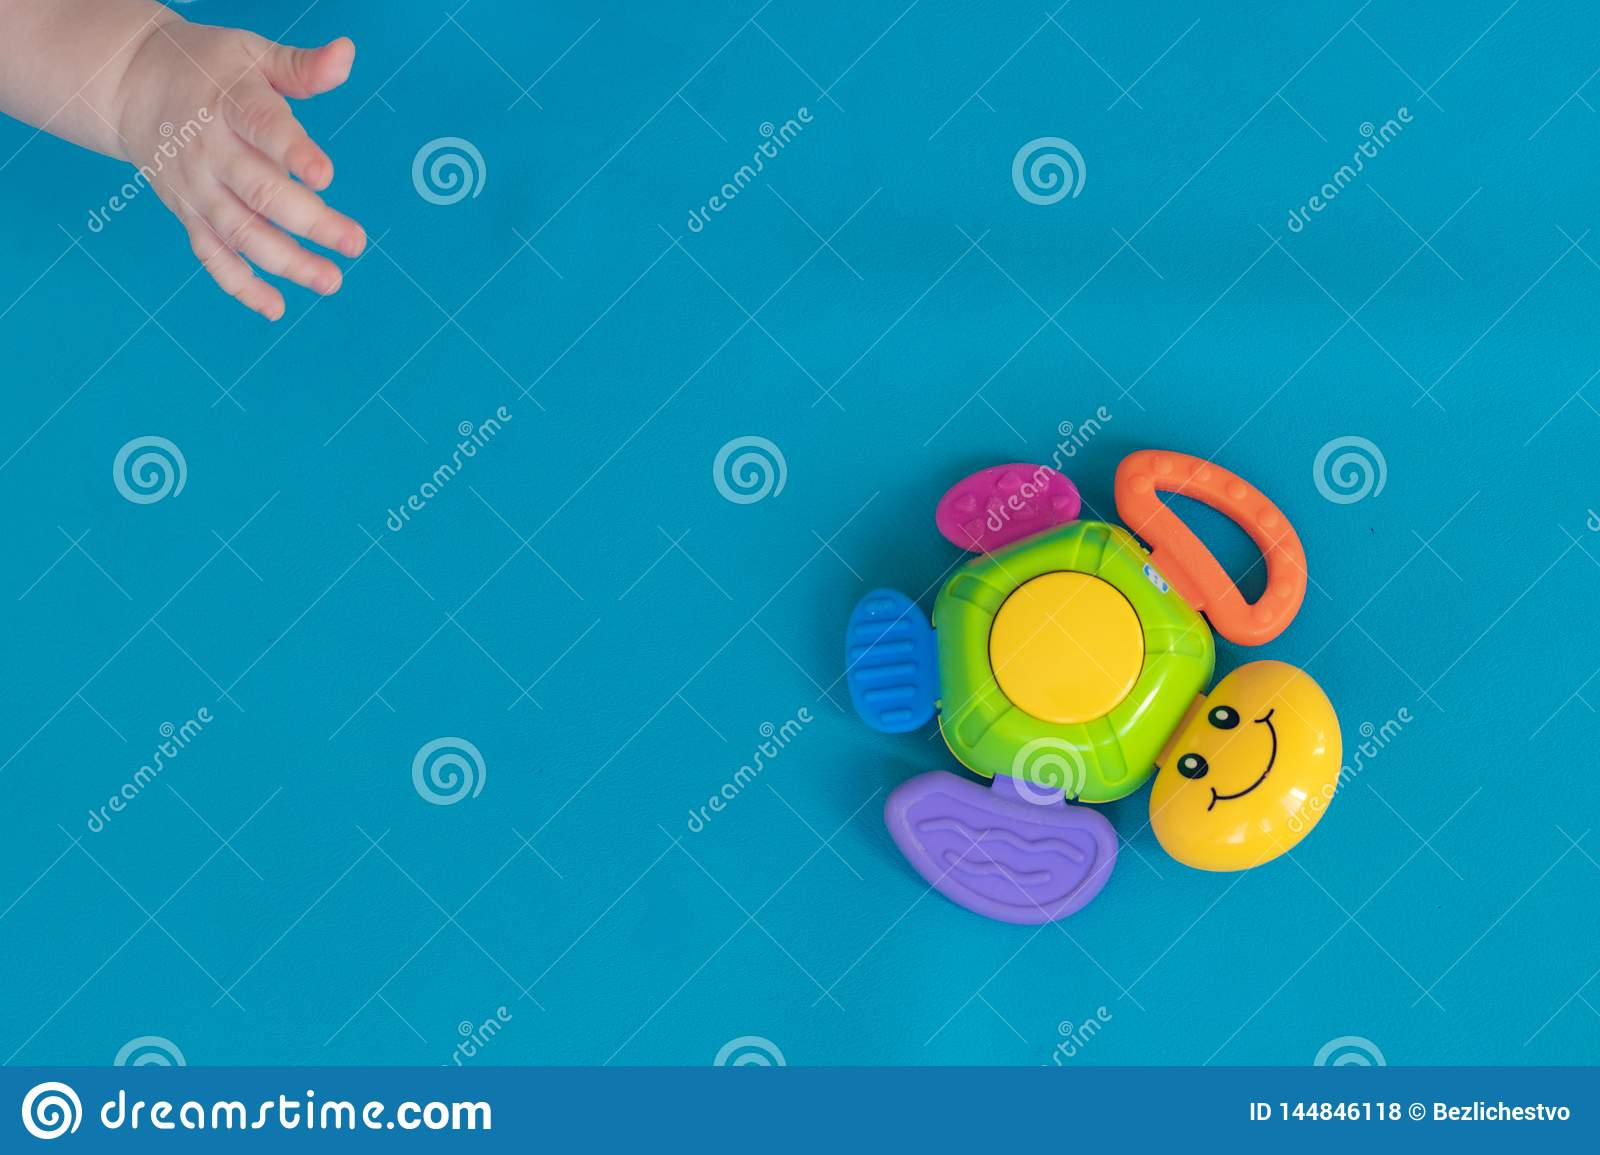 The hand of the child reaches for a multicolored toy turtle, which hovering against a blue background. Diagonal. Close-up